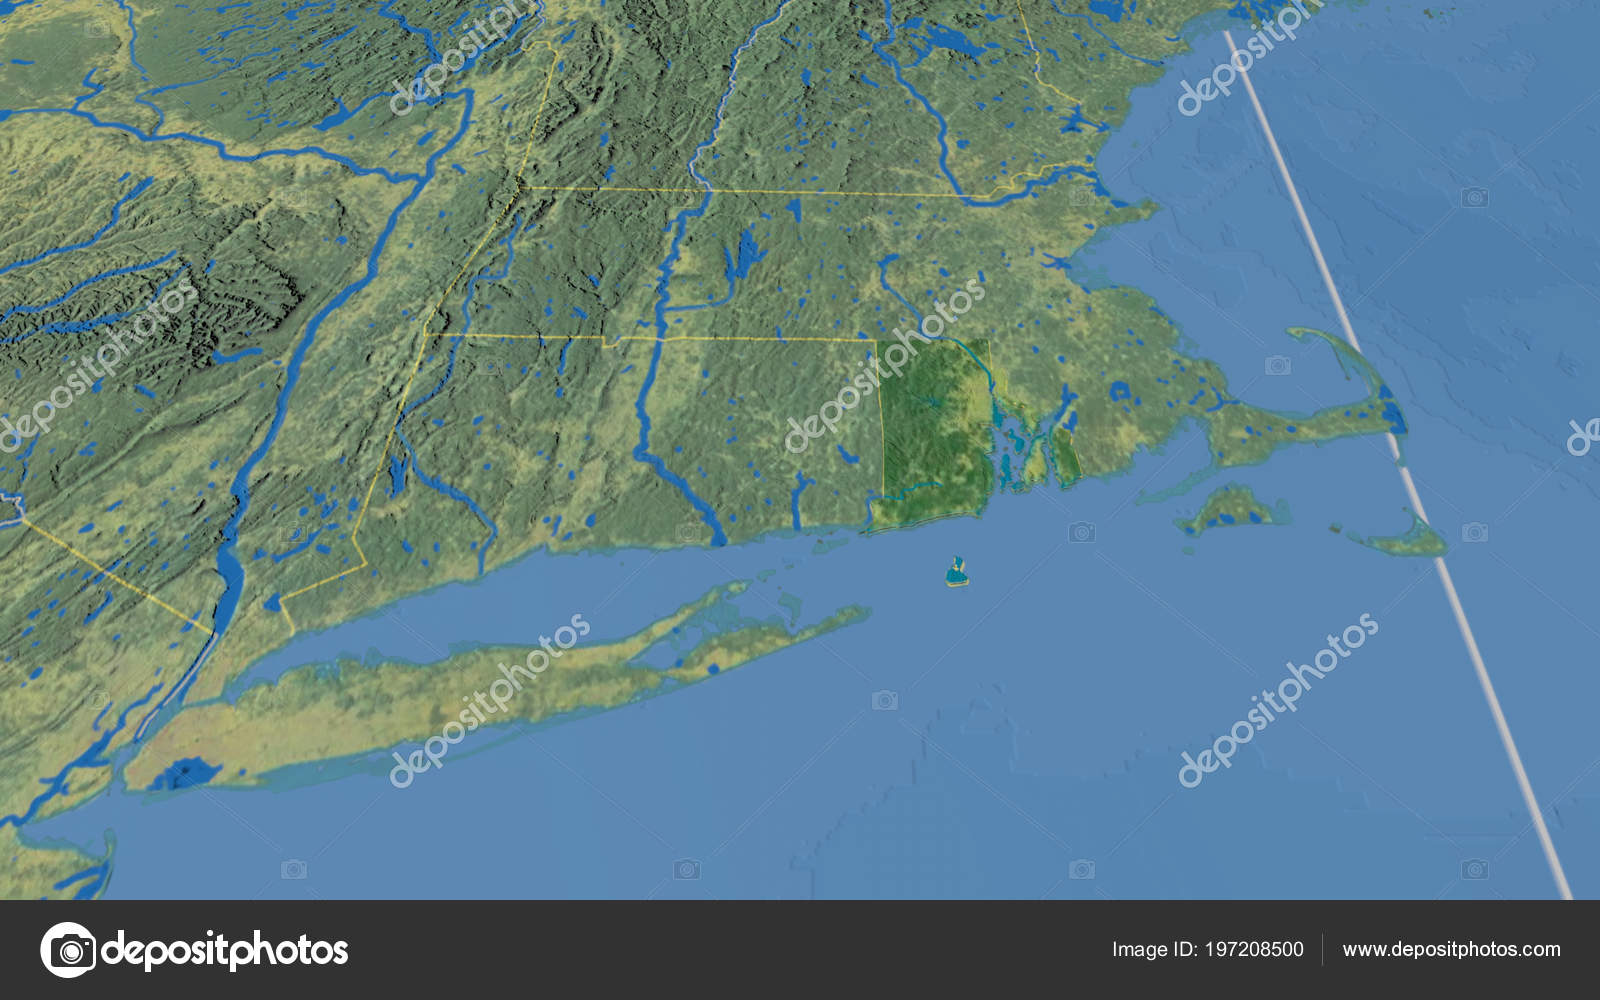 Topographic Map Rhode Island.Rhode Island Region United States Extruded Topographic Map Stock